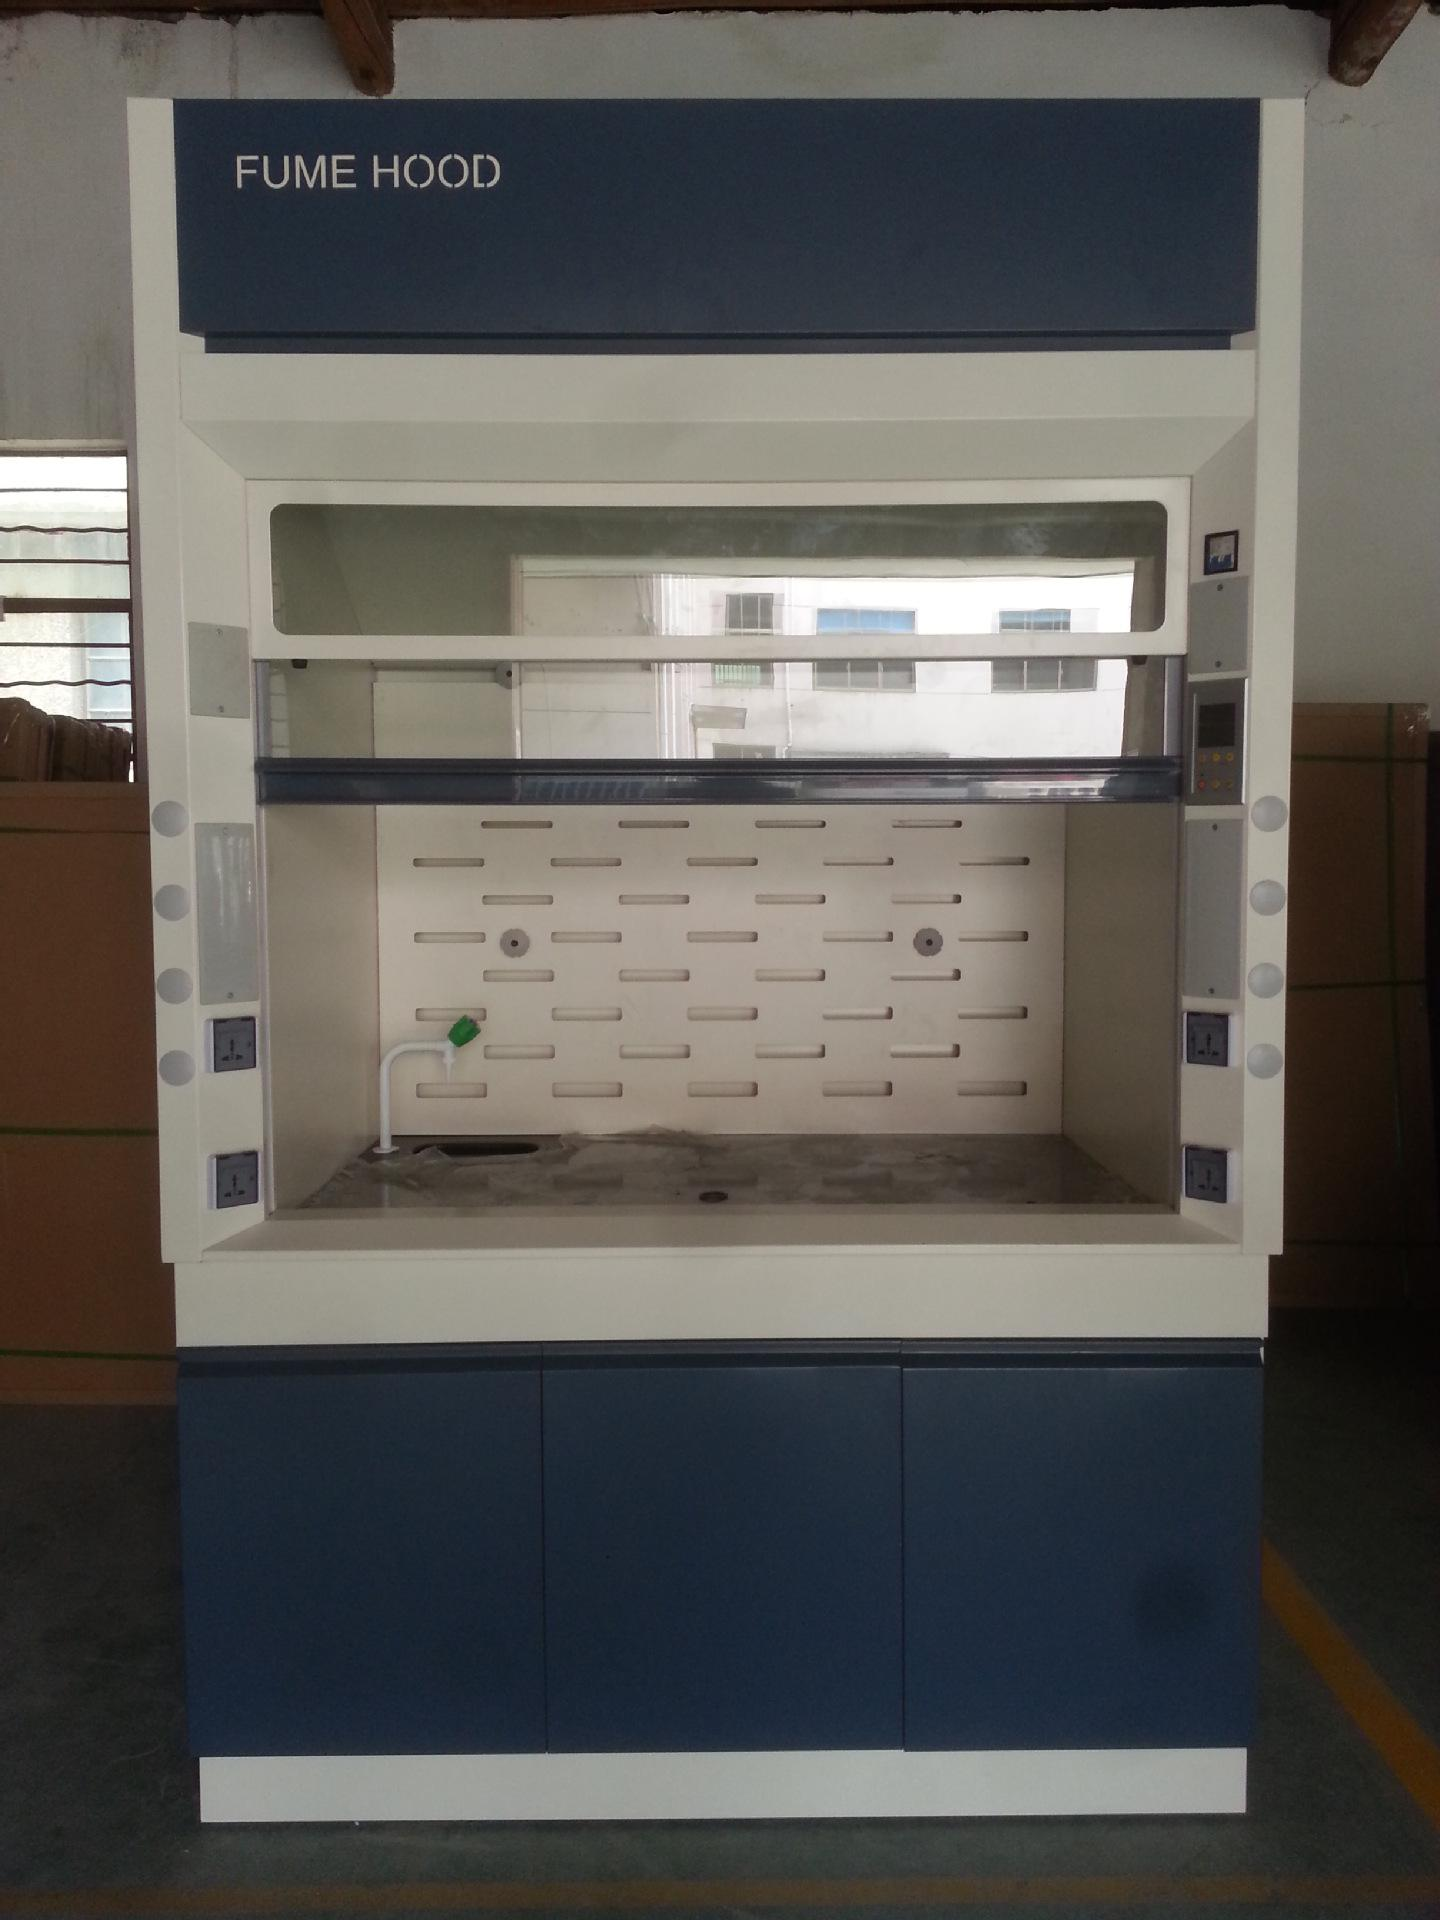 Ew Laboratory Fume Hood for Inspection & Testing Center